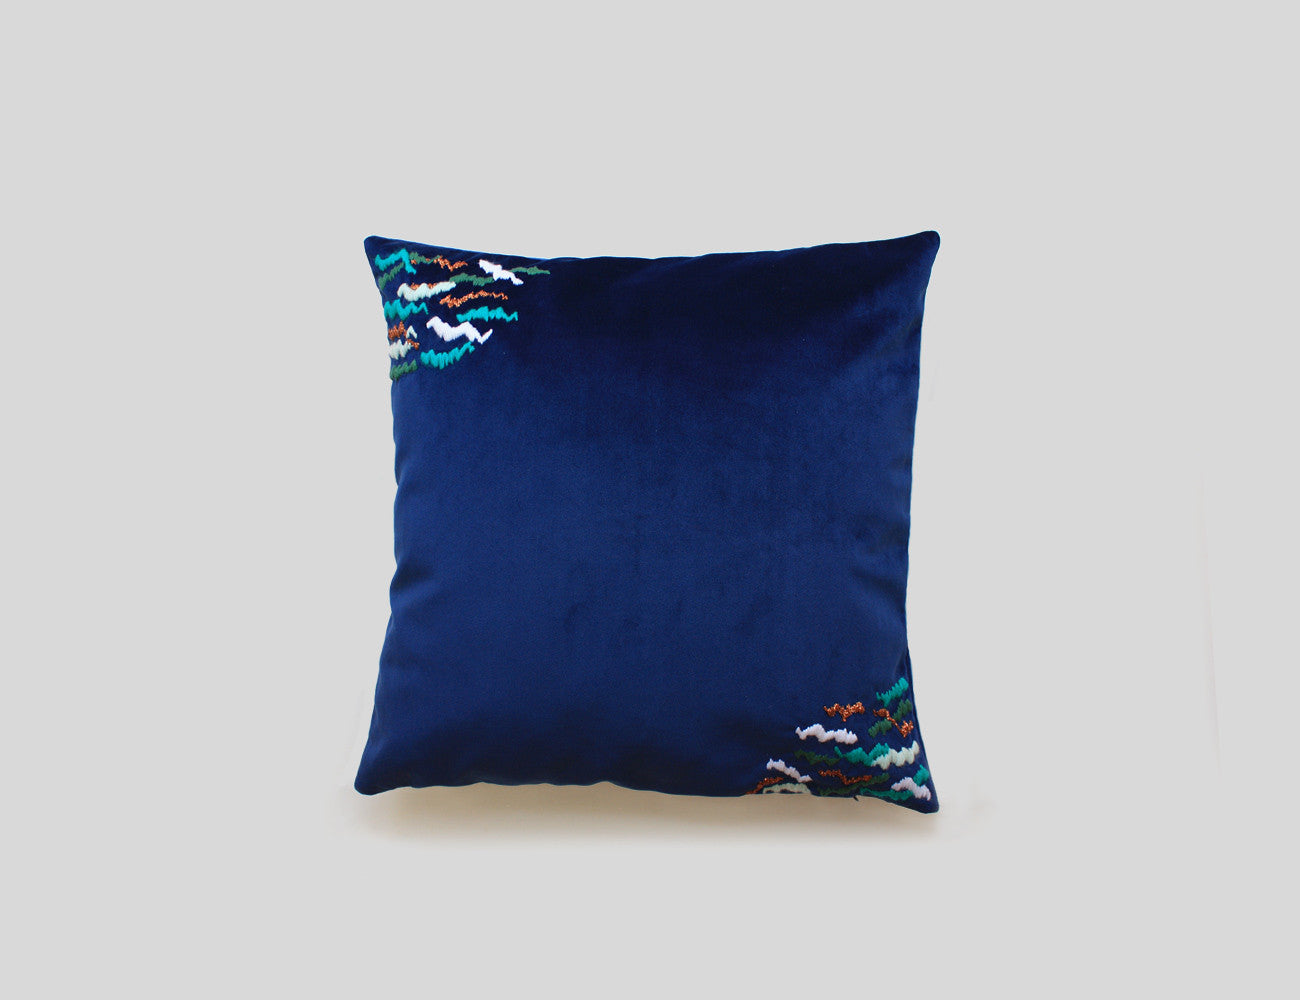 WIND Summer cushion designer cushions, silk scarfs, rugs and bags - My Friend Paco